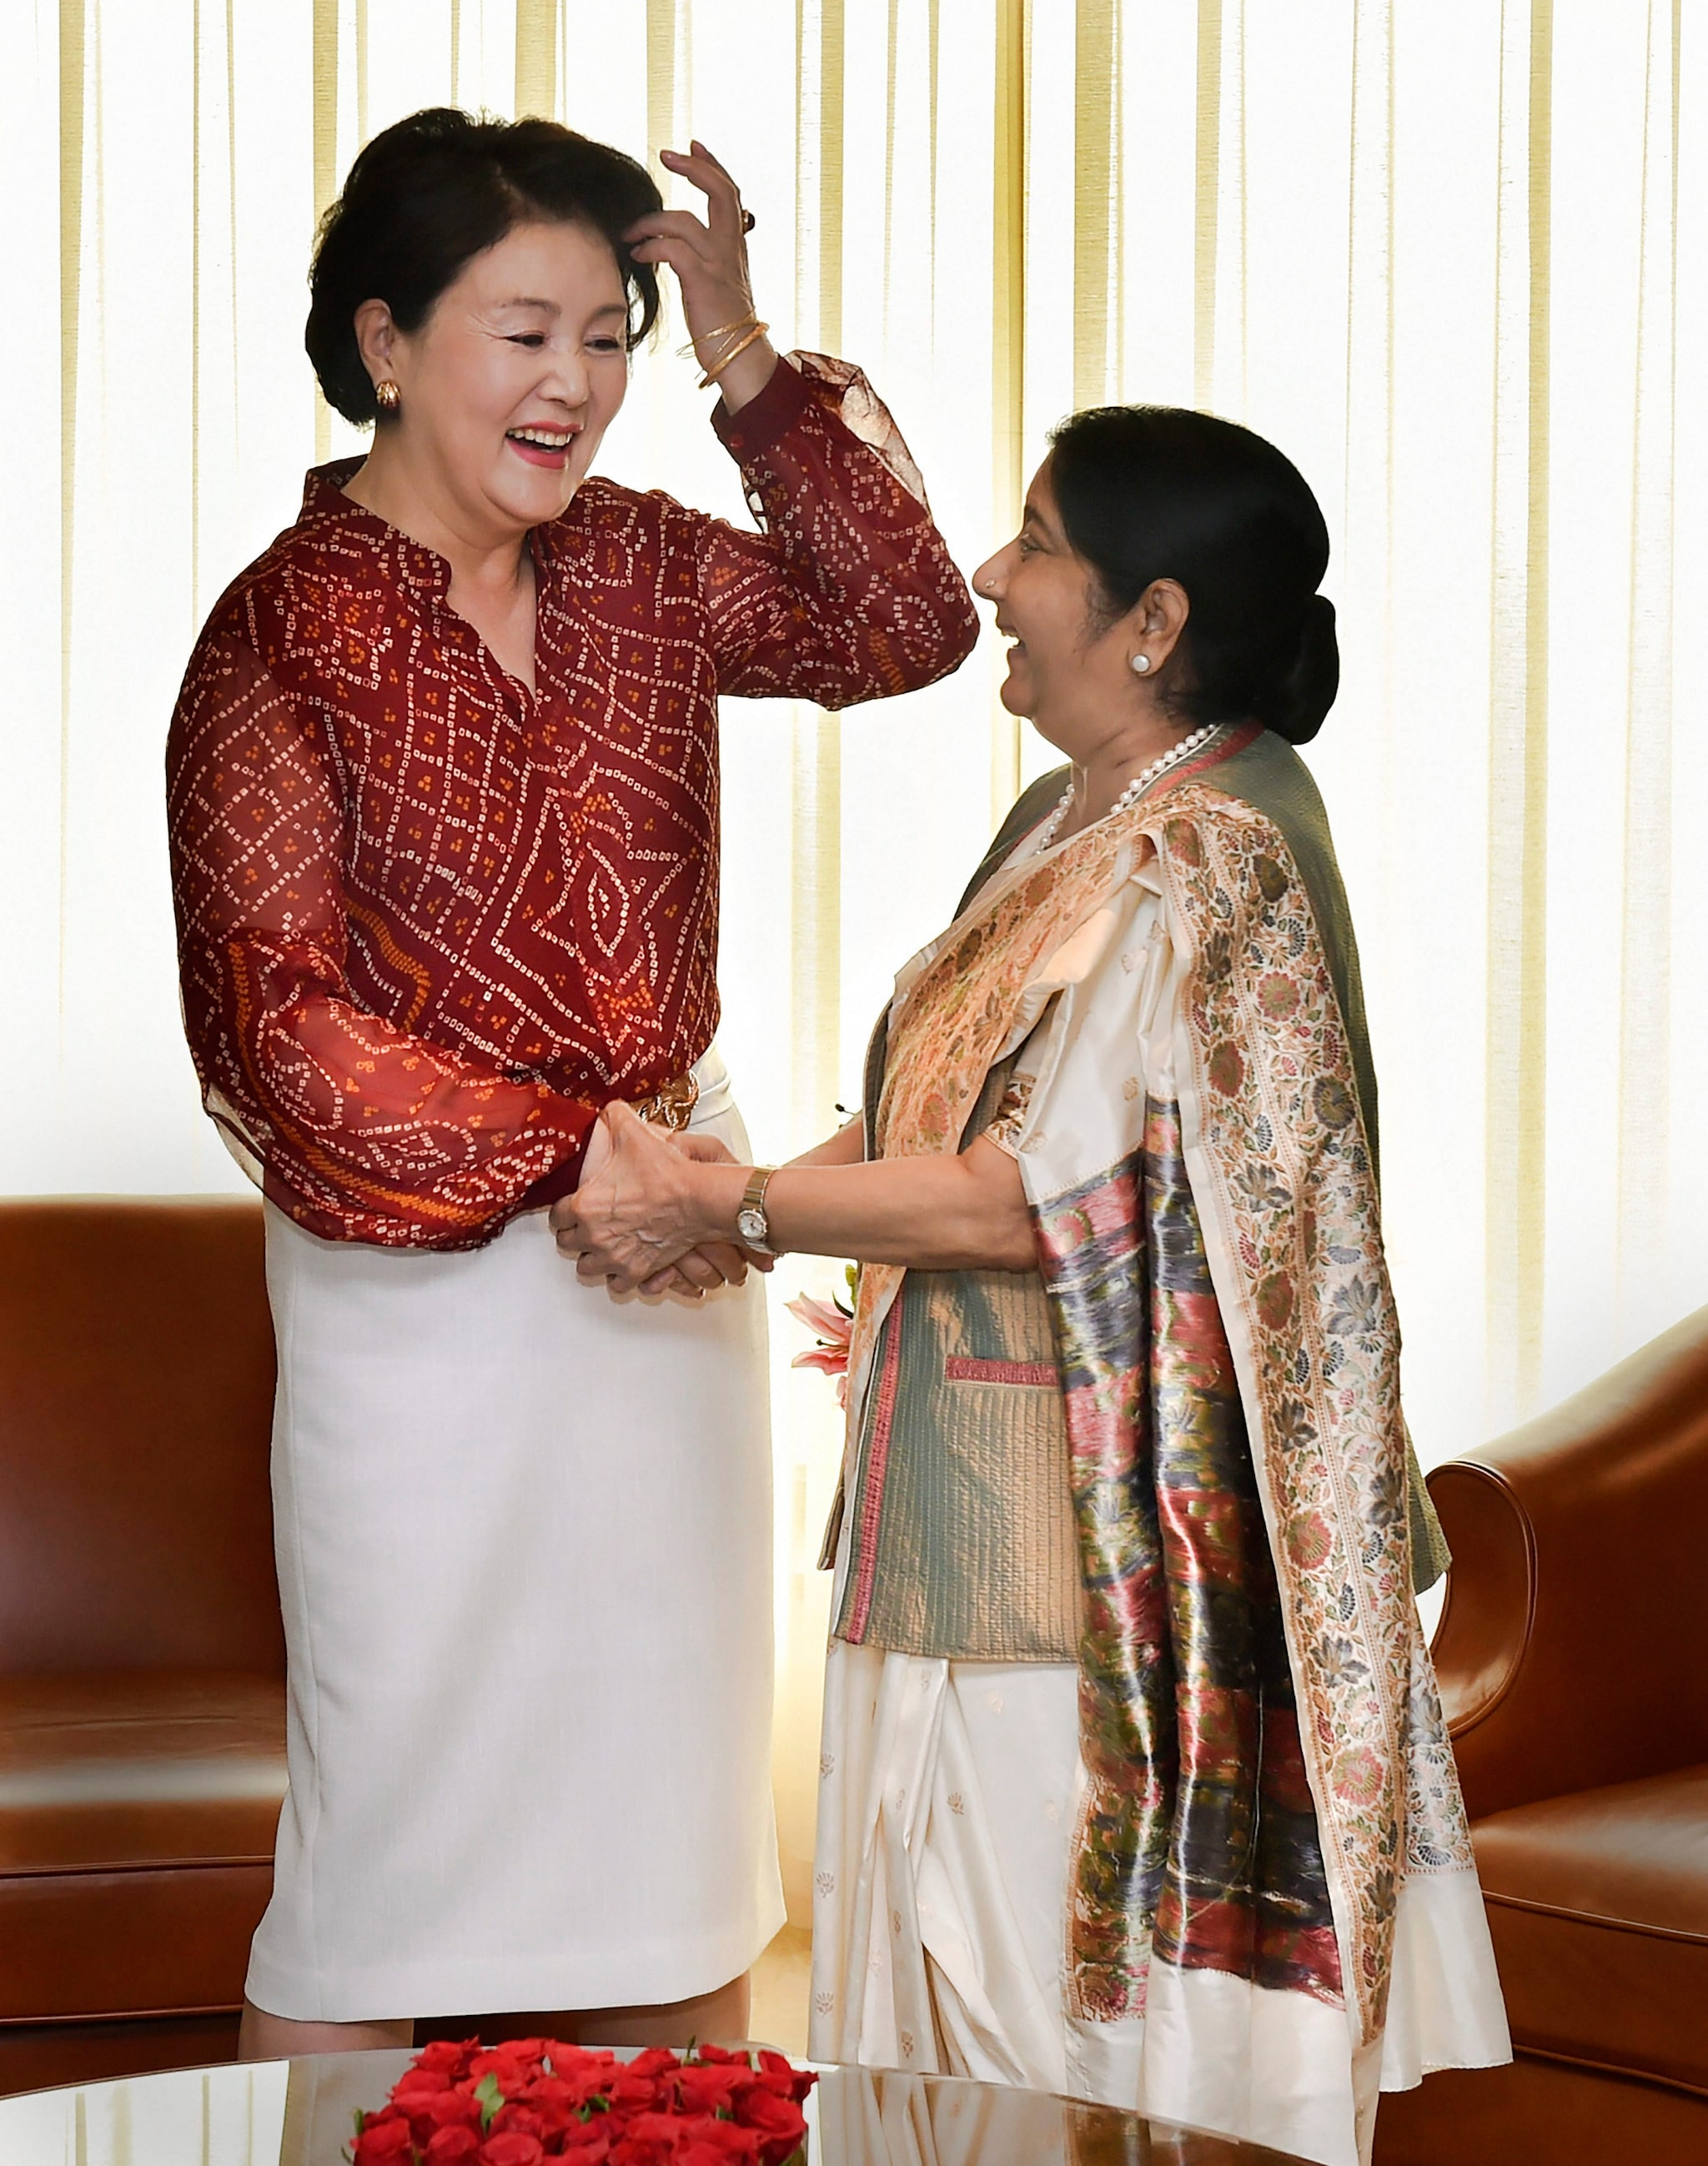 External Affairs Minister Sushma Swaraj with South Korean First Lady Kim Jung-sook ahead of a meeting, in New Delhi, Monday, Nov 5, 2018. (PTI Photo/Manvender Vashist)